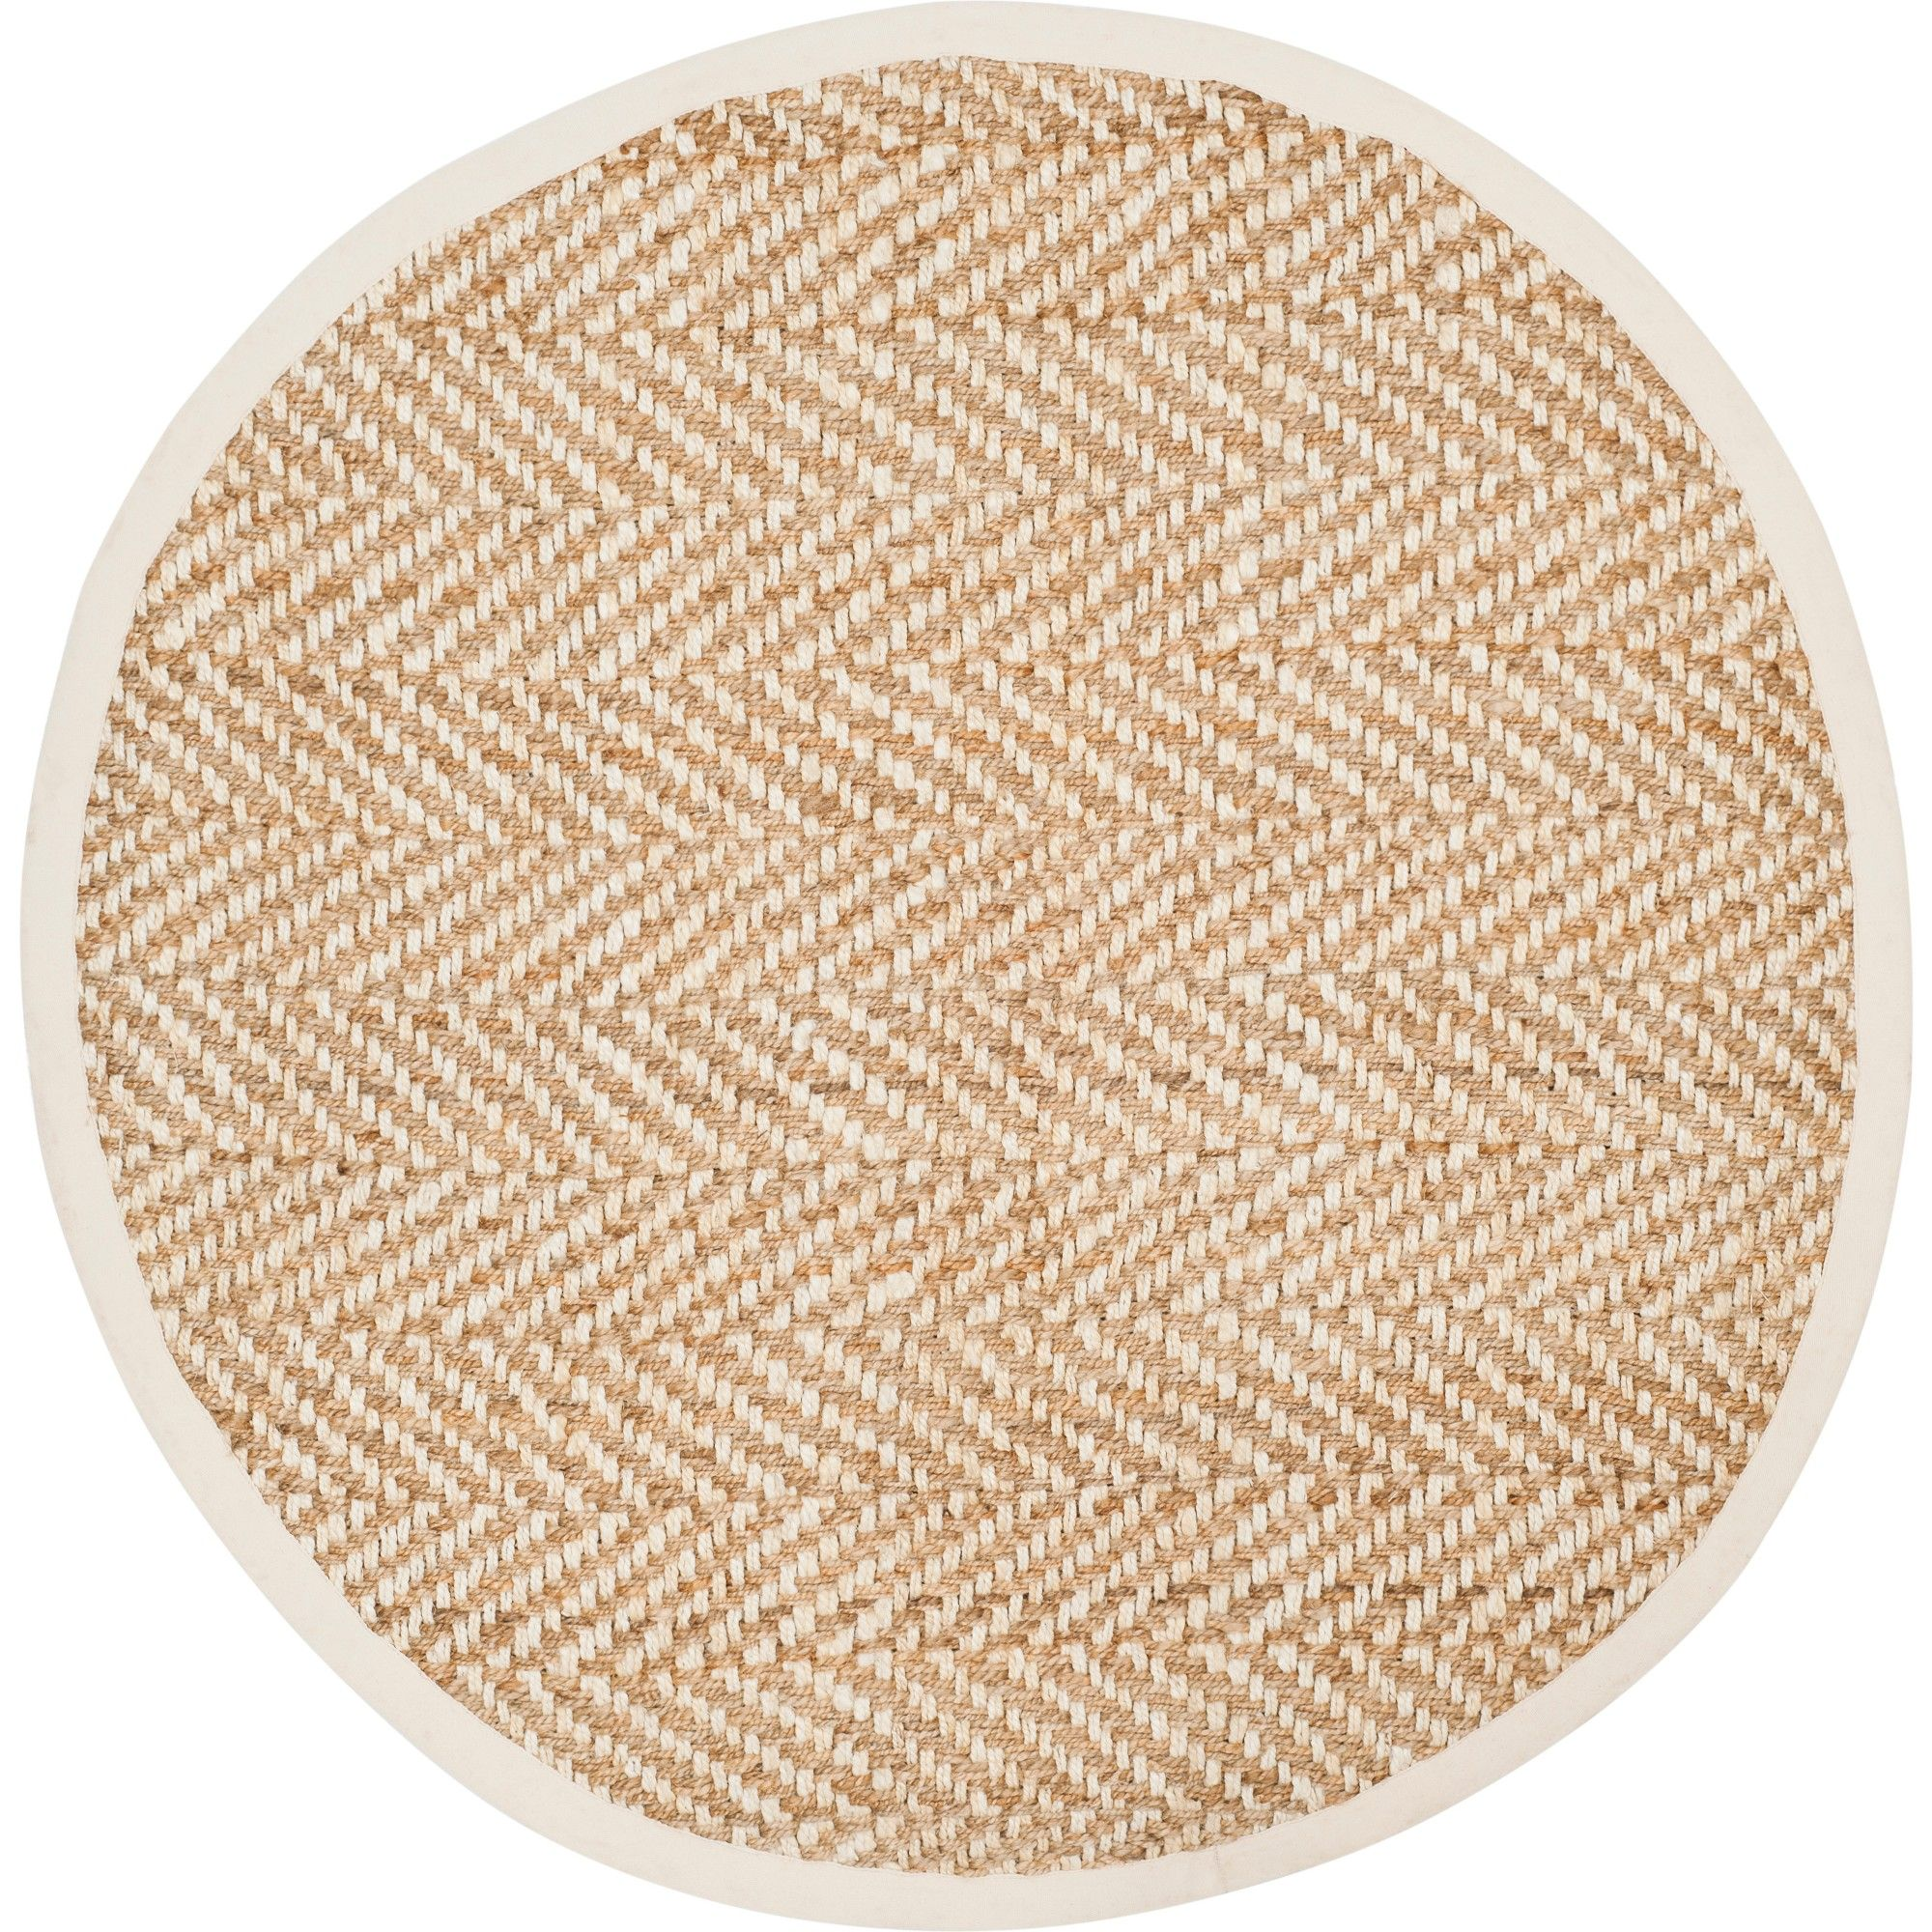 4 Solid Woven Round Area Rug Ivory Natural Safavieh Size 4